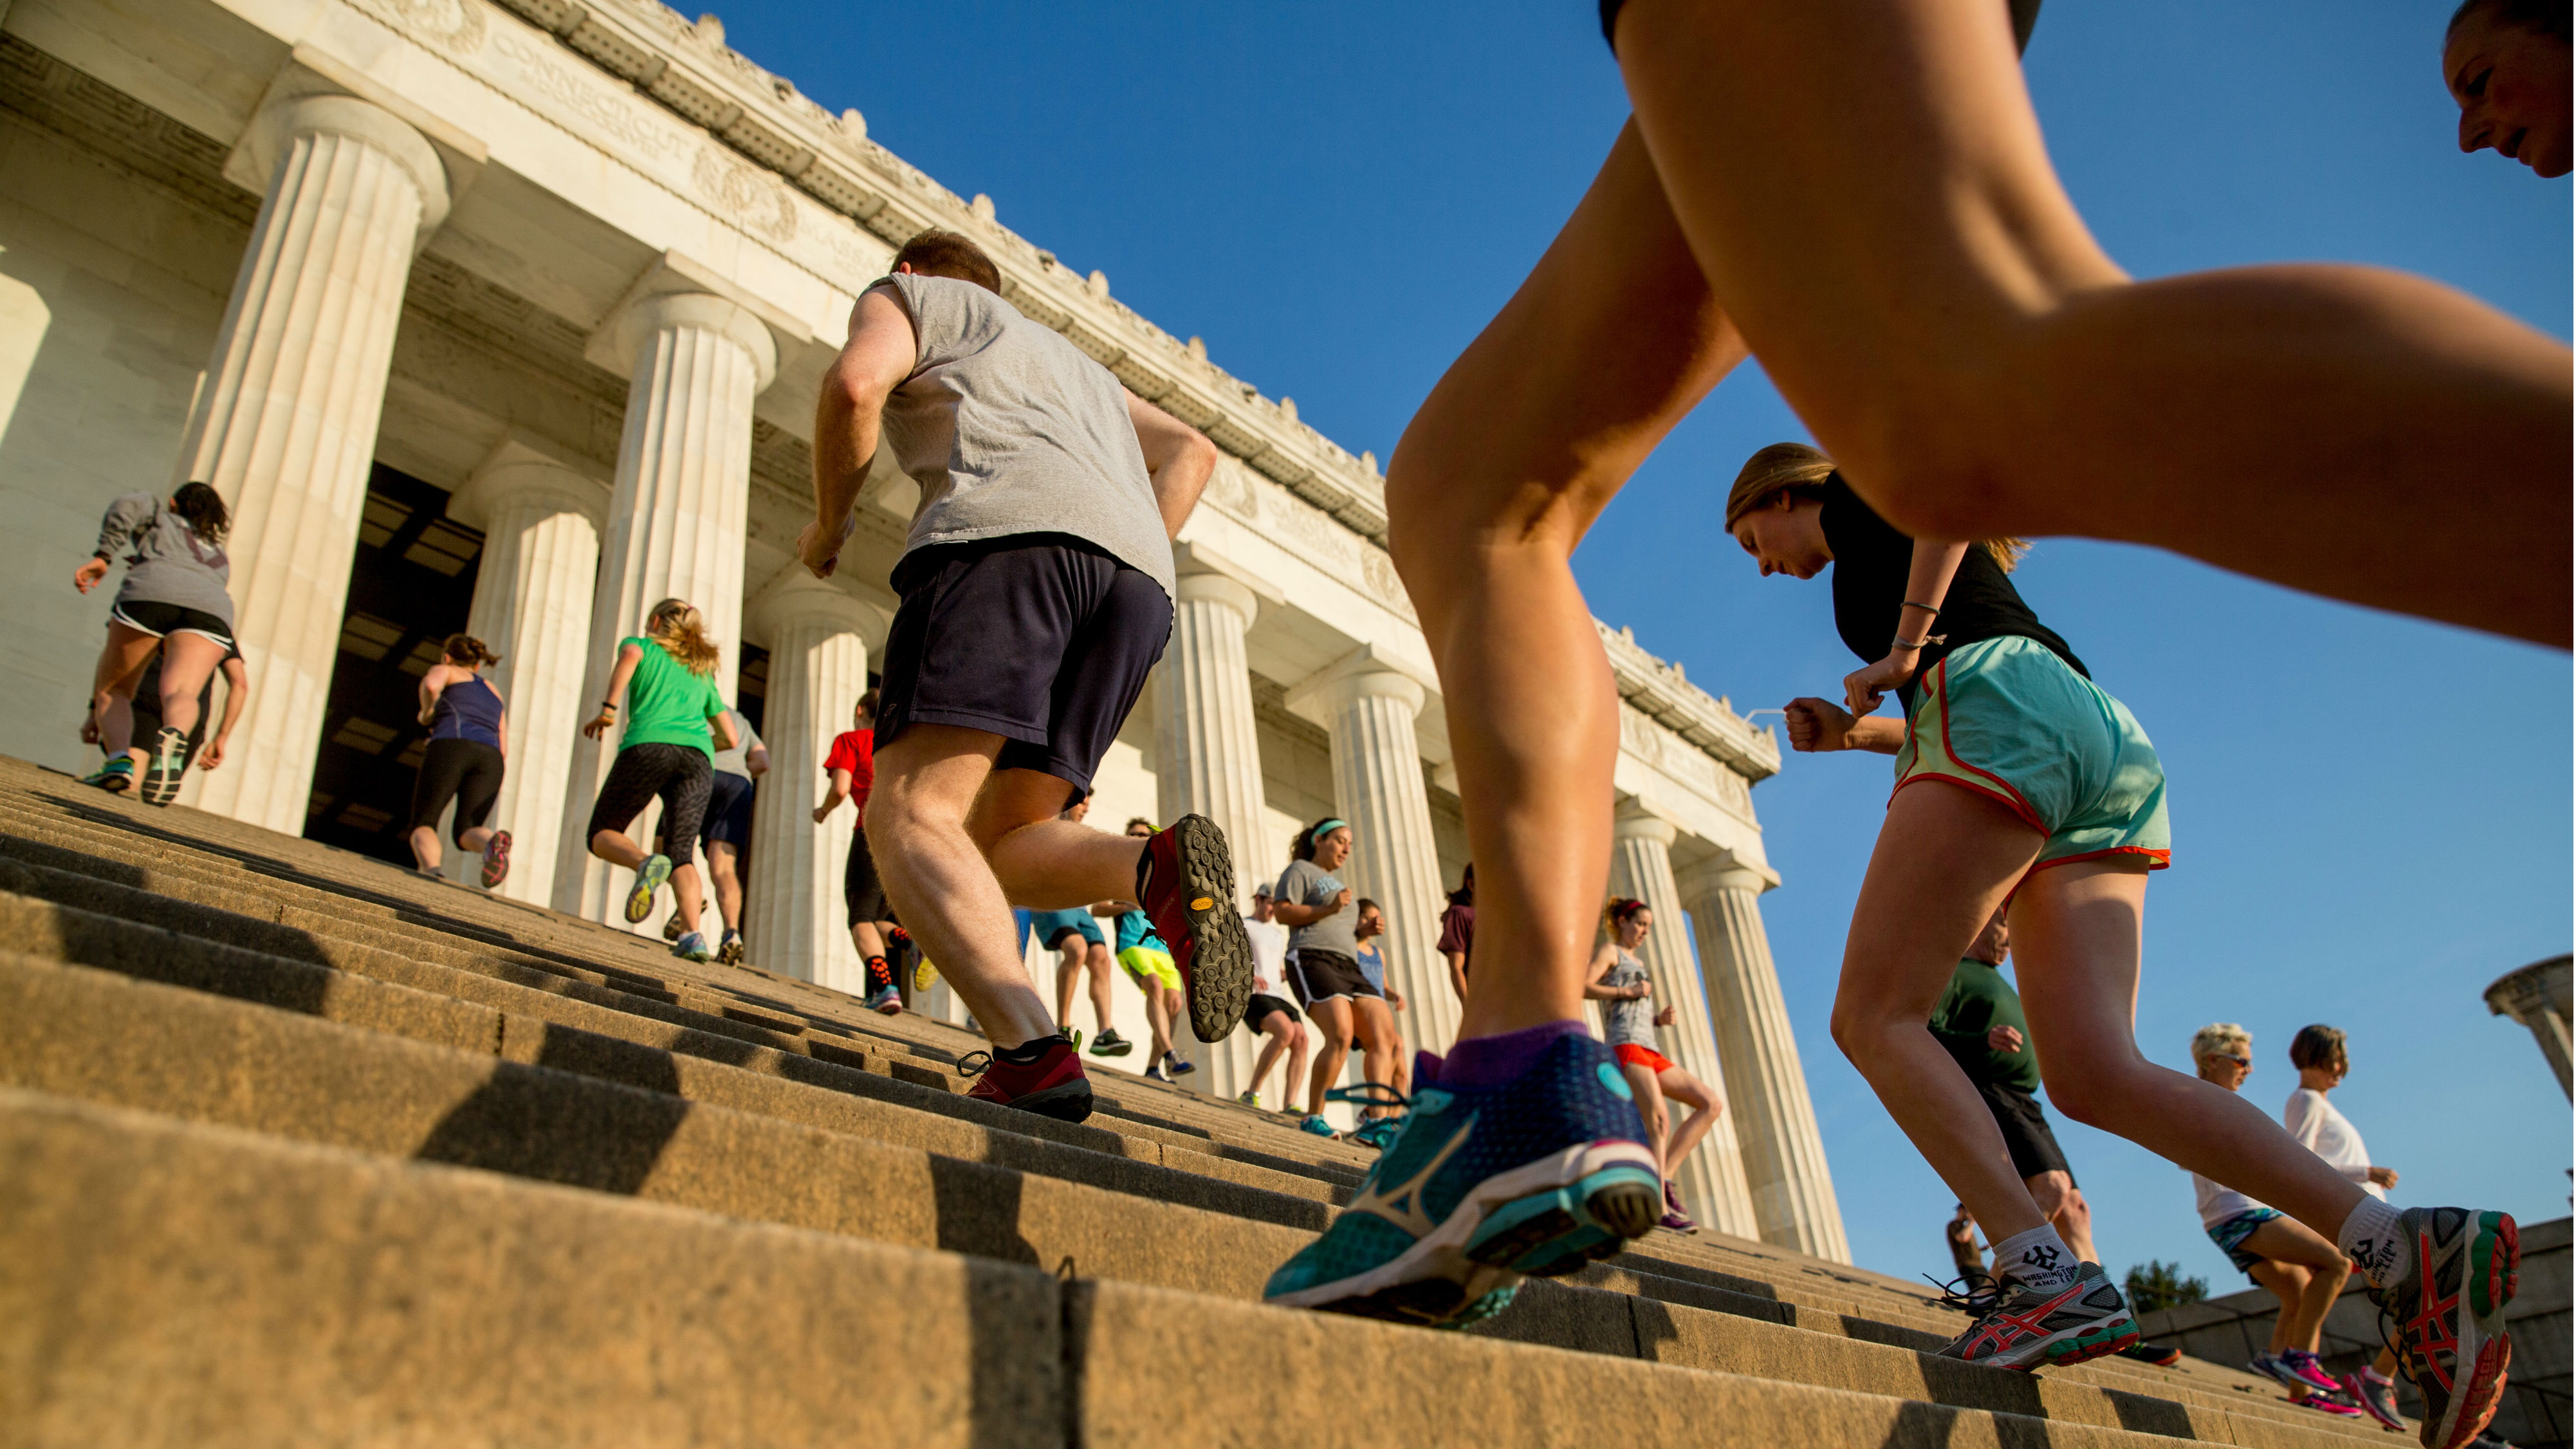 """In this May 25, 2016 photo, members of the running group """"November Project"""" run up and down the stairs of the Lincoln Memorial, in Washington. Fitness buffs around the country are bringing the 'take the stairs' advice to a whole new level as noteworthy landmarks have become unlikely, yet popular new workout sites."""